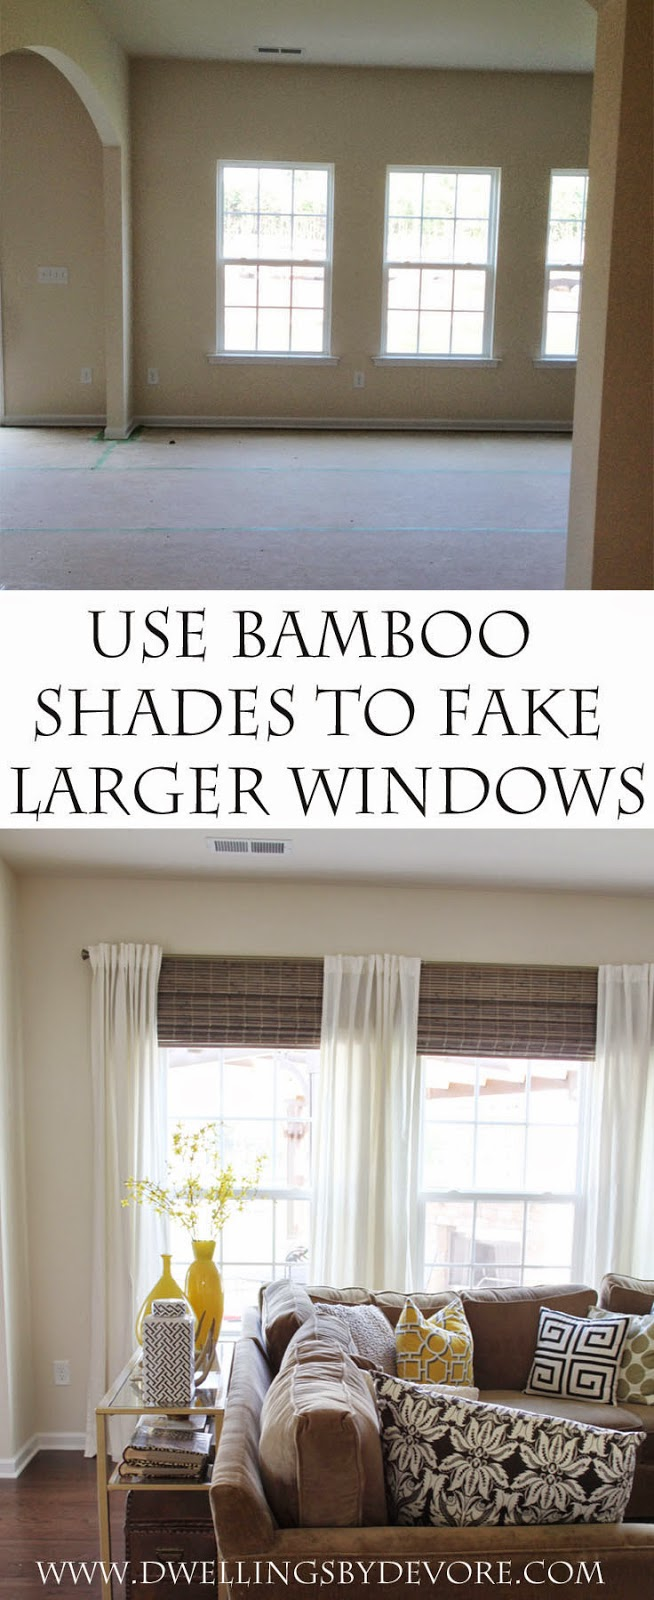 Dwellings By DeVore Bamboo Shades To Make Your Windows